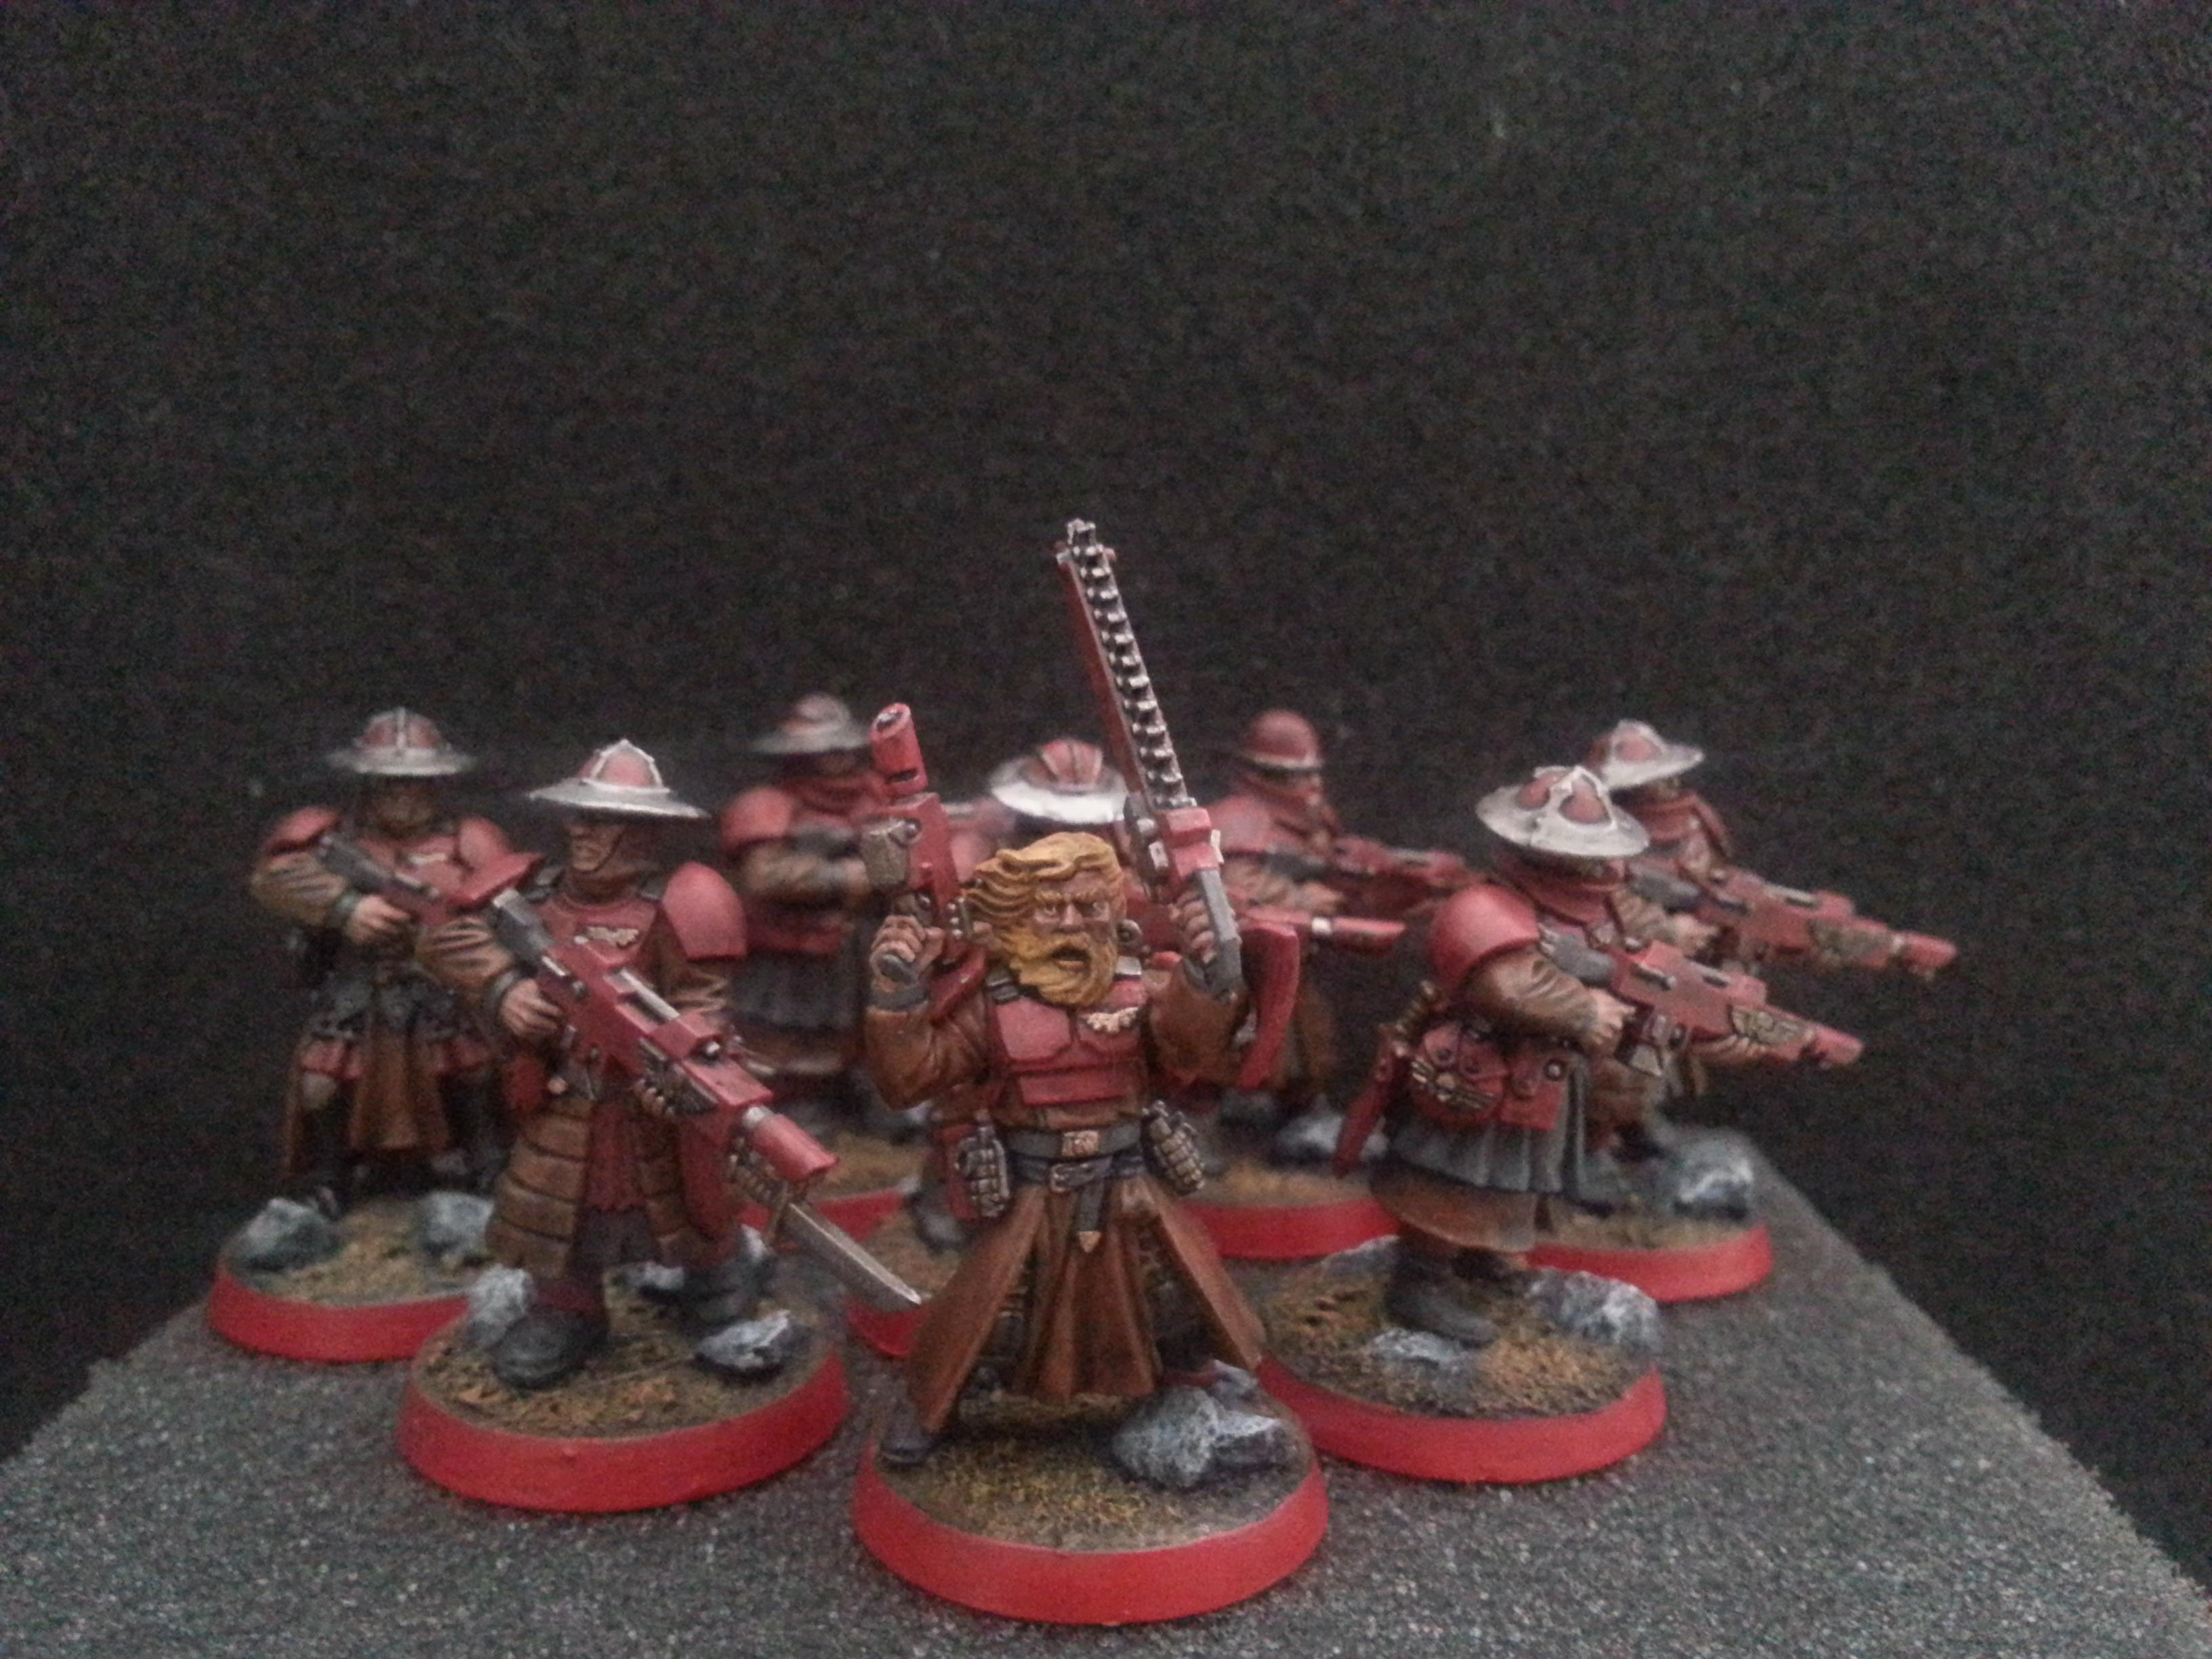 A nearly complete squad of Crimson Cavaliers, the special weapons guardsman is having his arms magnatized and will join them later